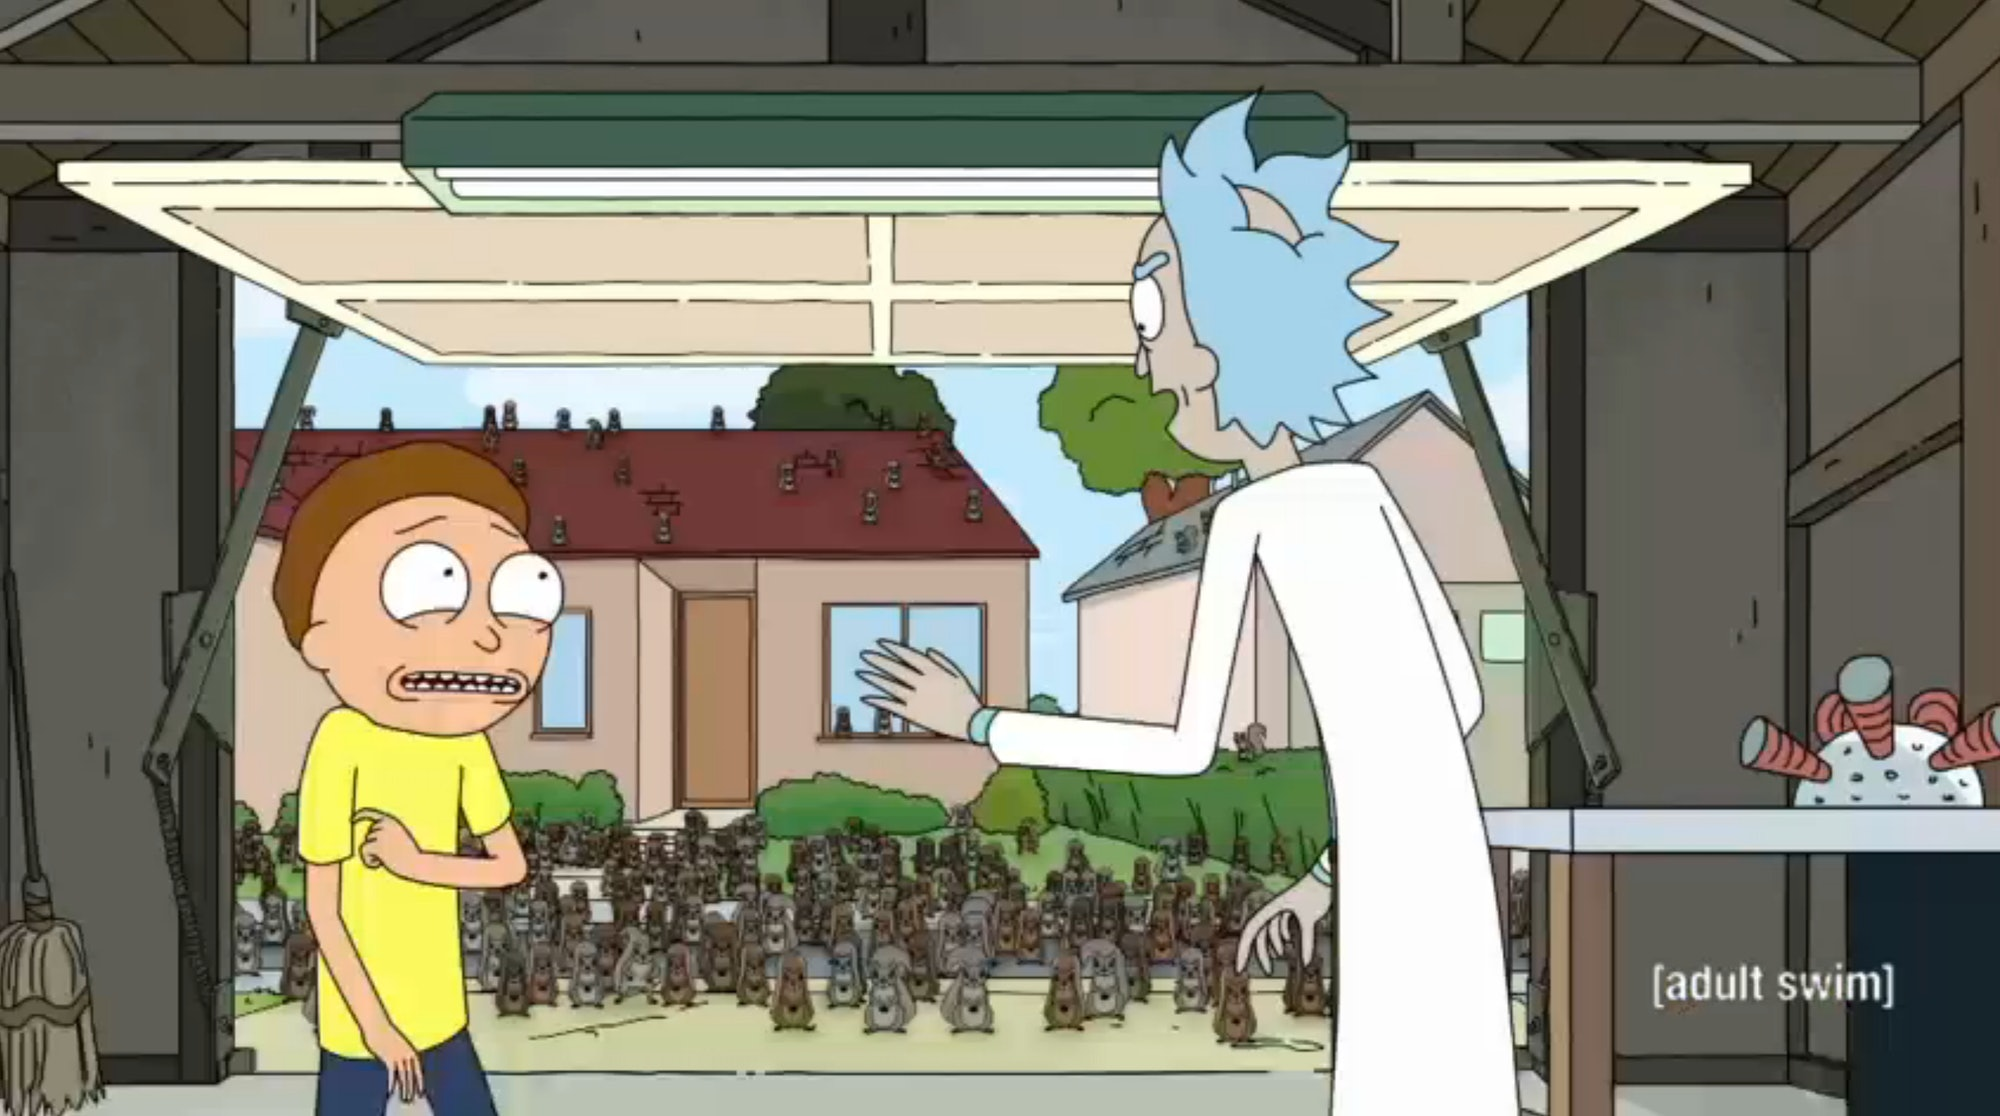 Remember when Morty ruined an entire universe by messing with the squirrels?